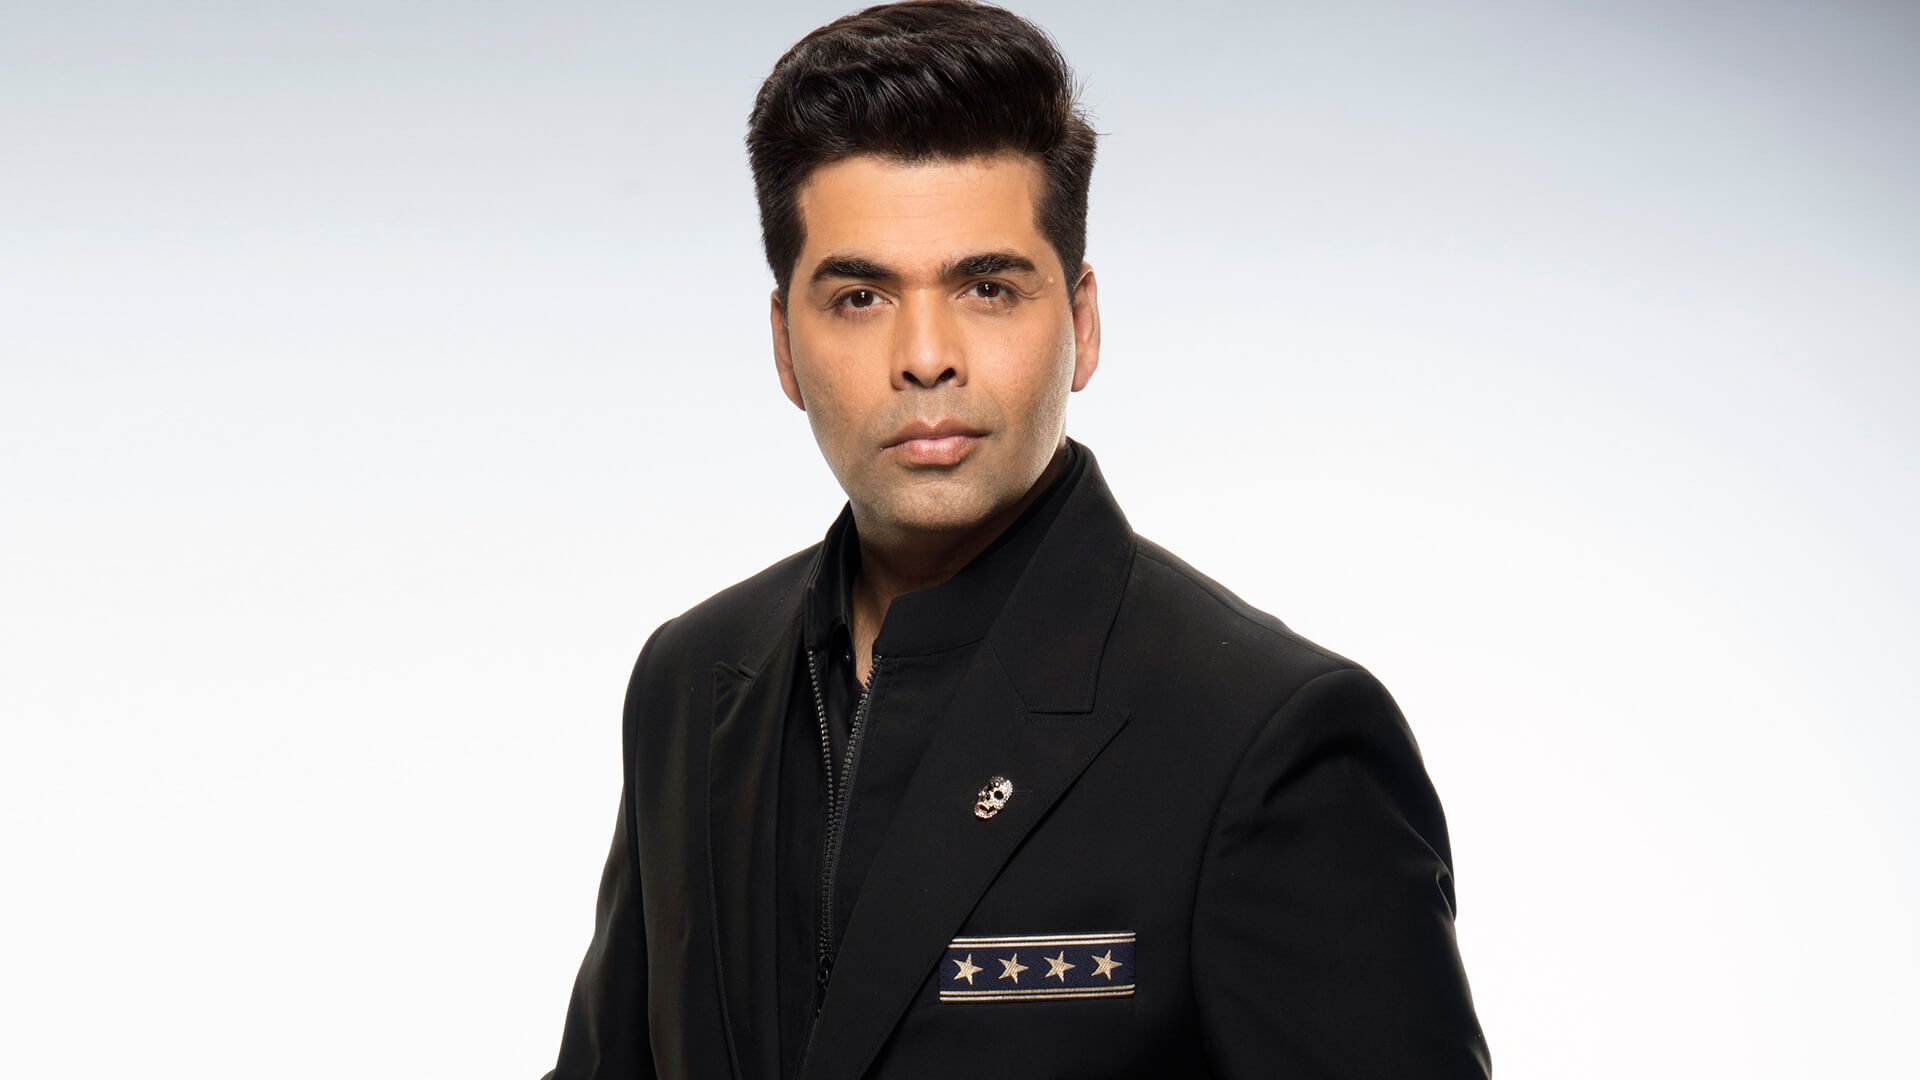 Karan Johar comments on #MeToo